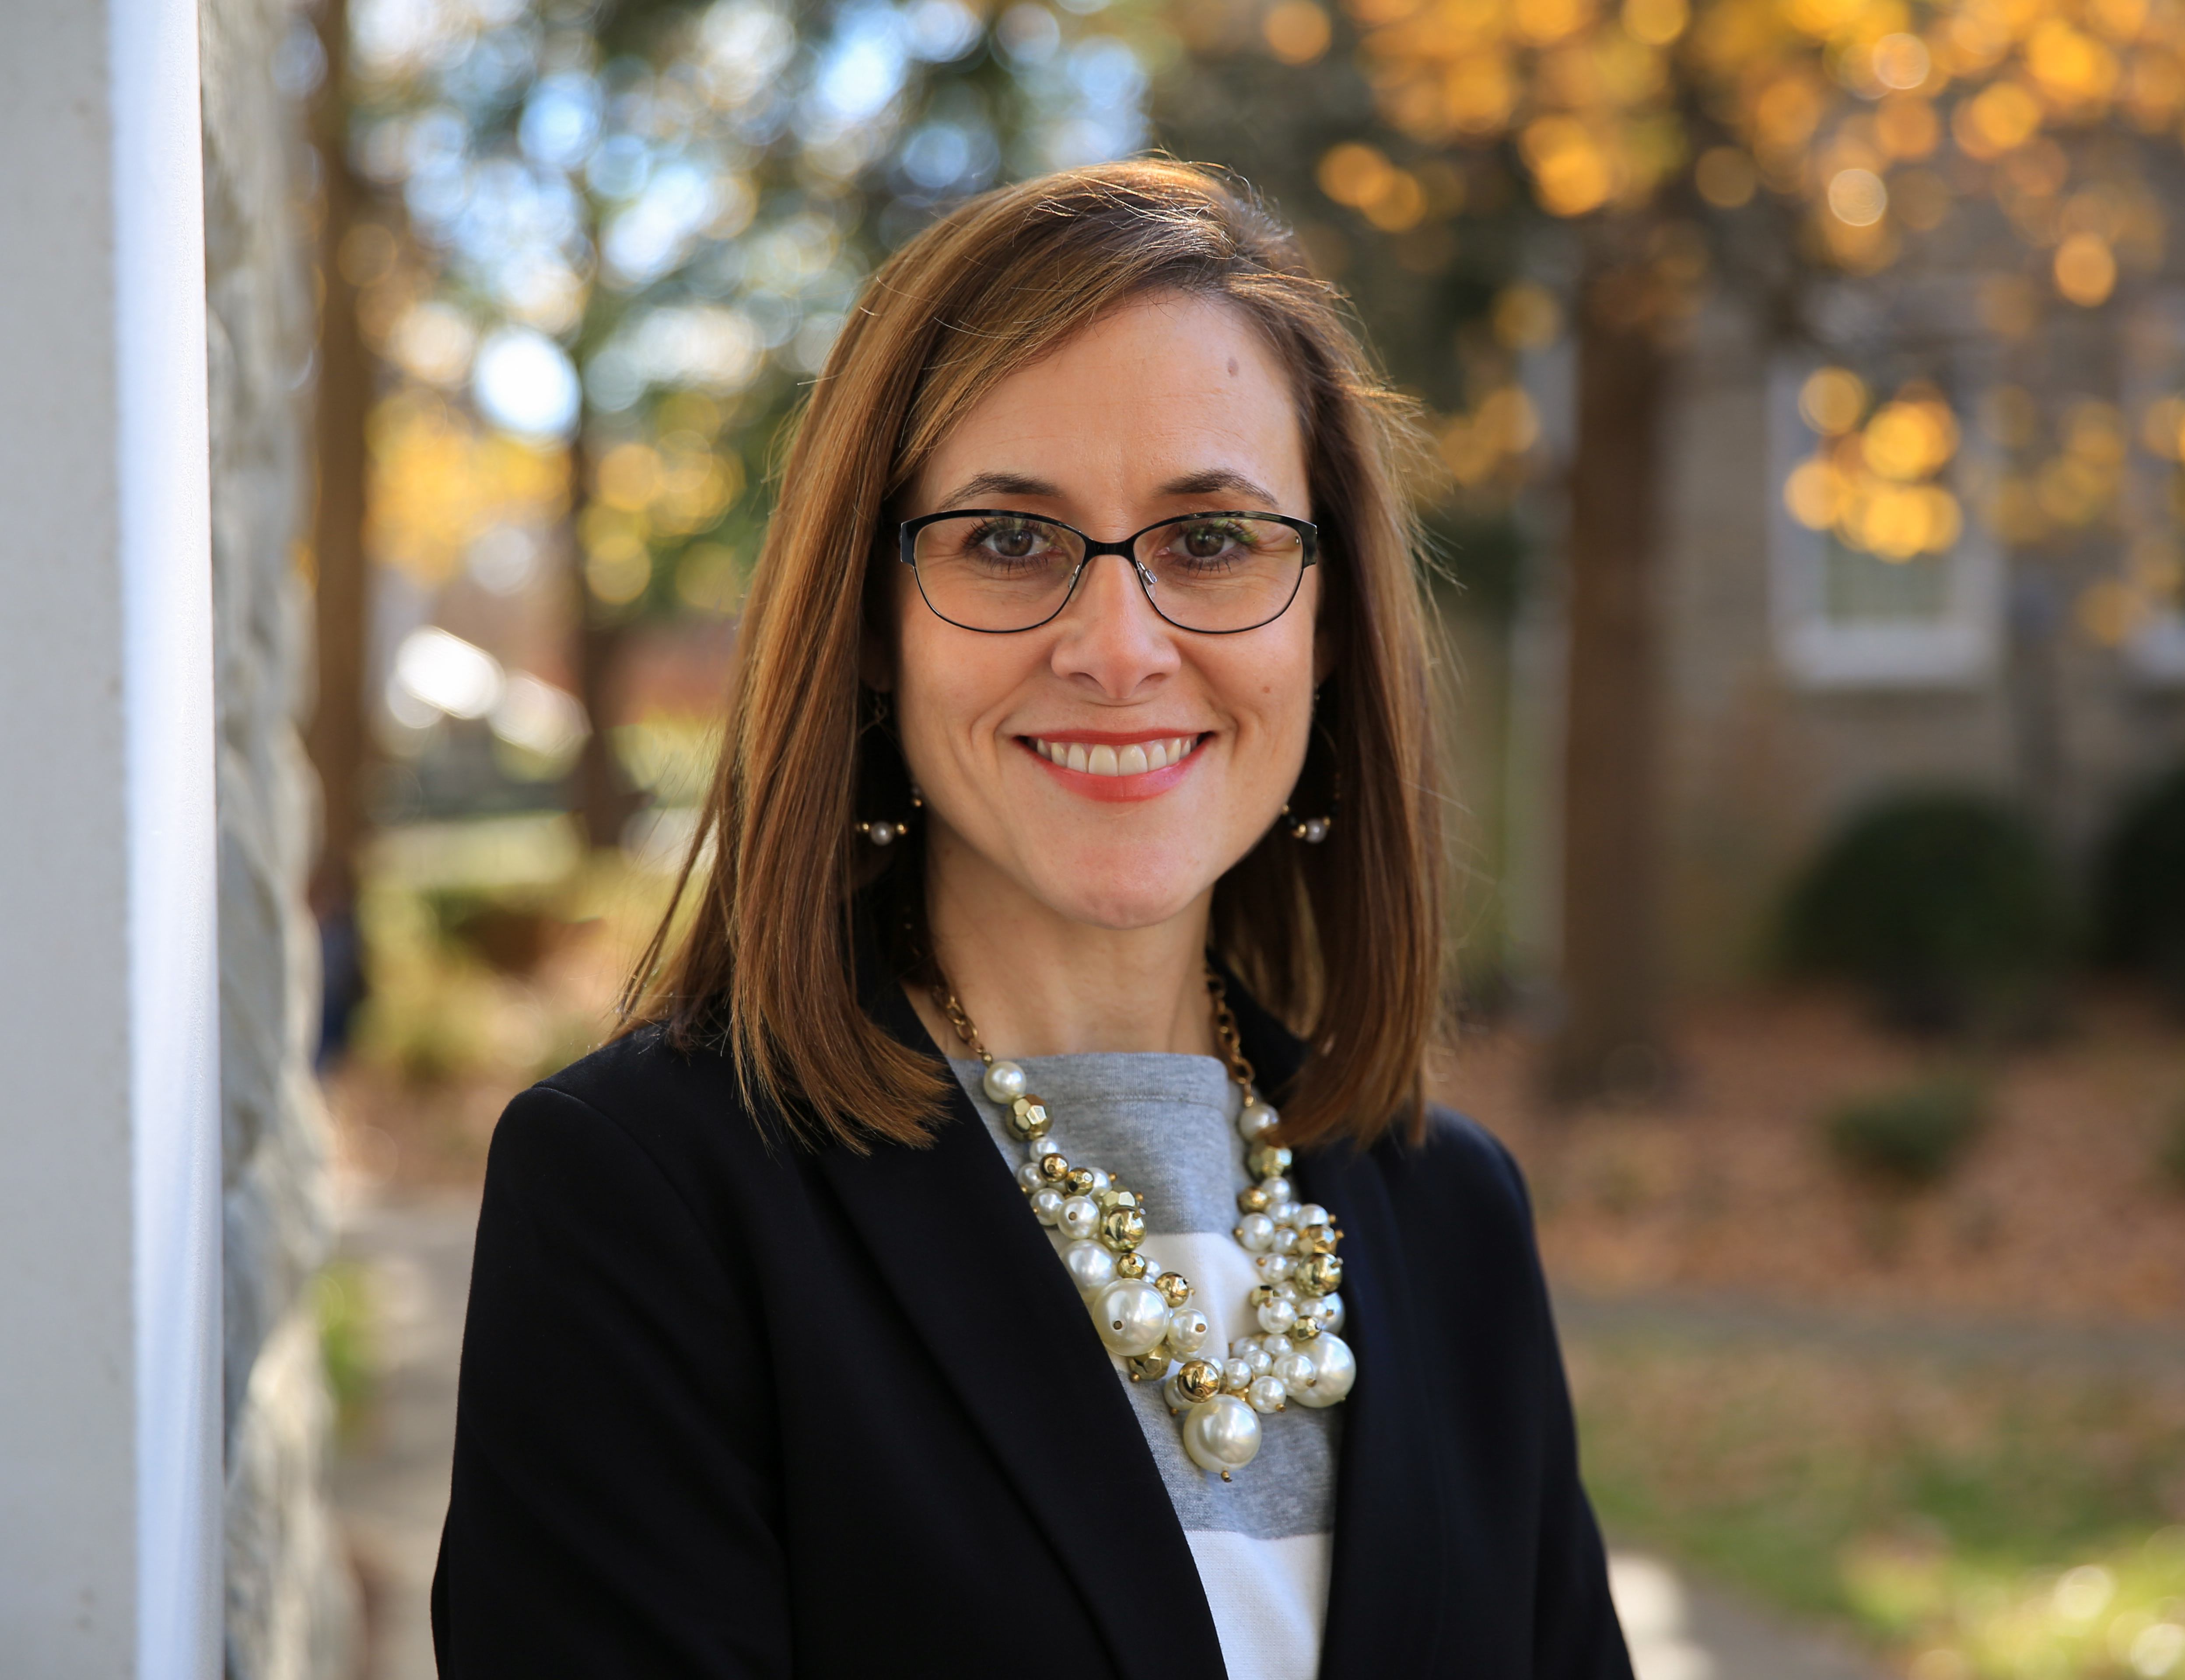 Cathy Hendon | Program Director for the Master of Organizational Leadership in the School of Graduate and Continuing Studies, Trevecca Nazarene University